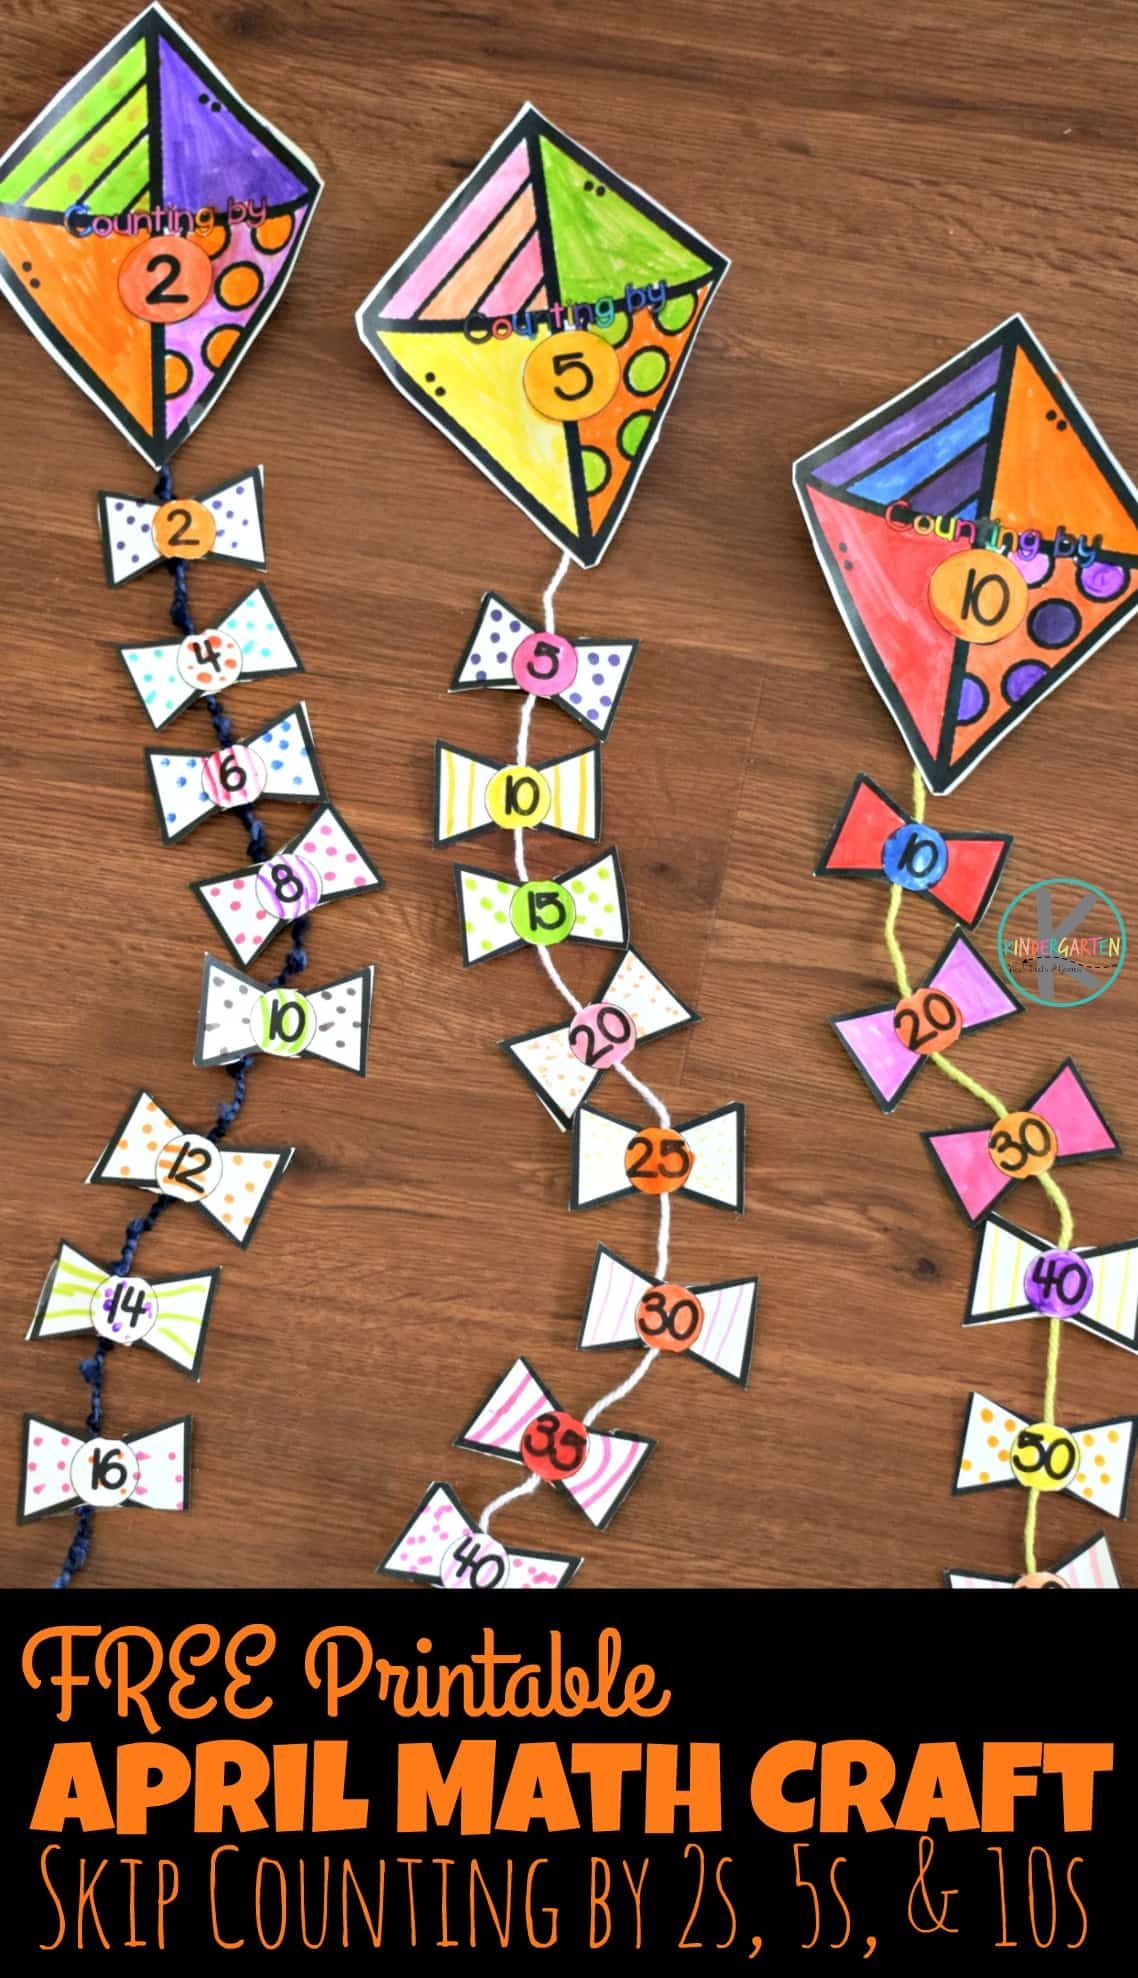 Free Printable April Math Craft